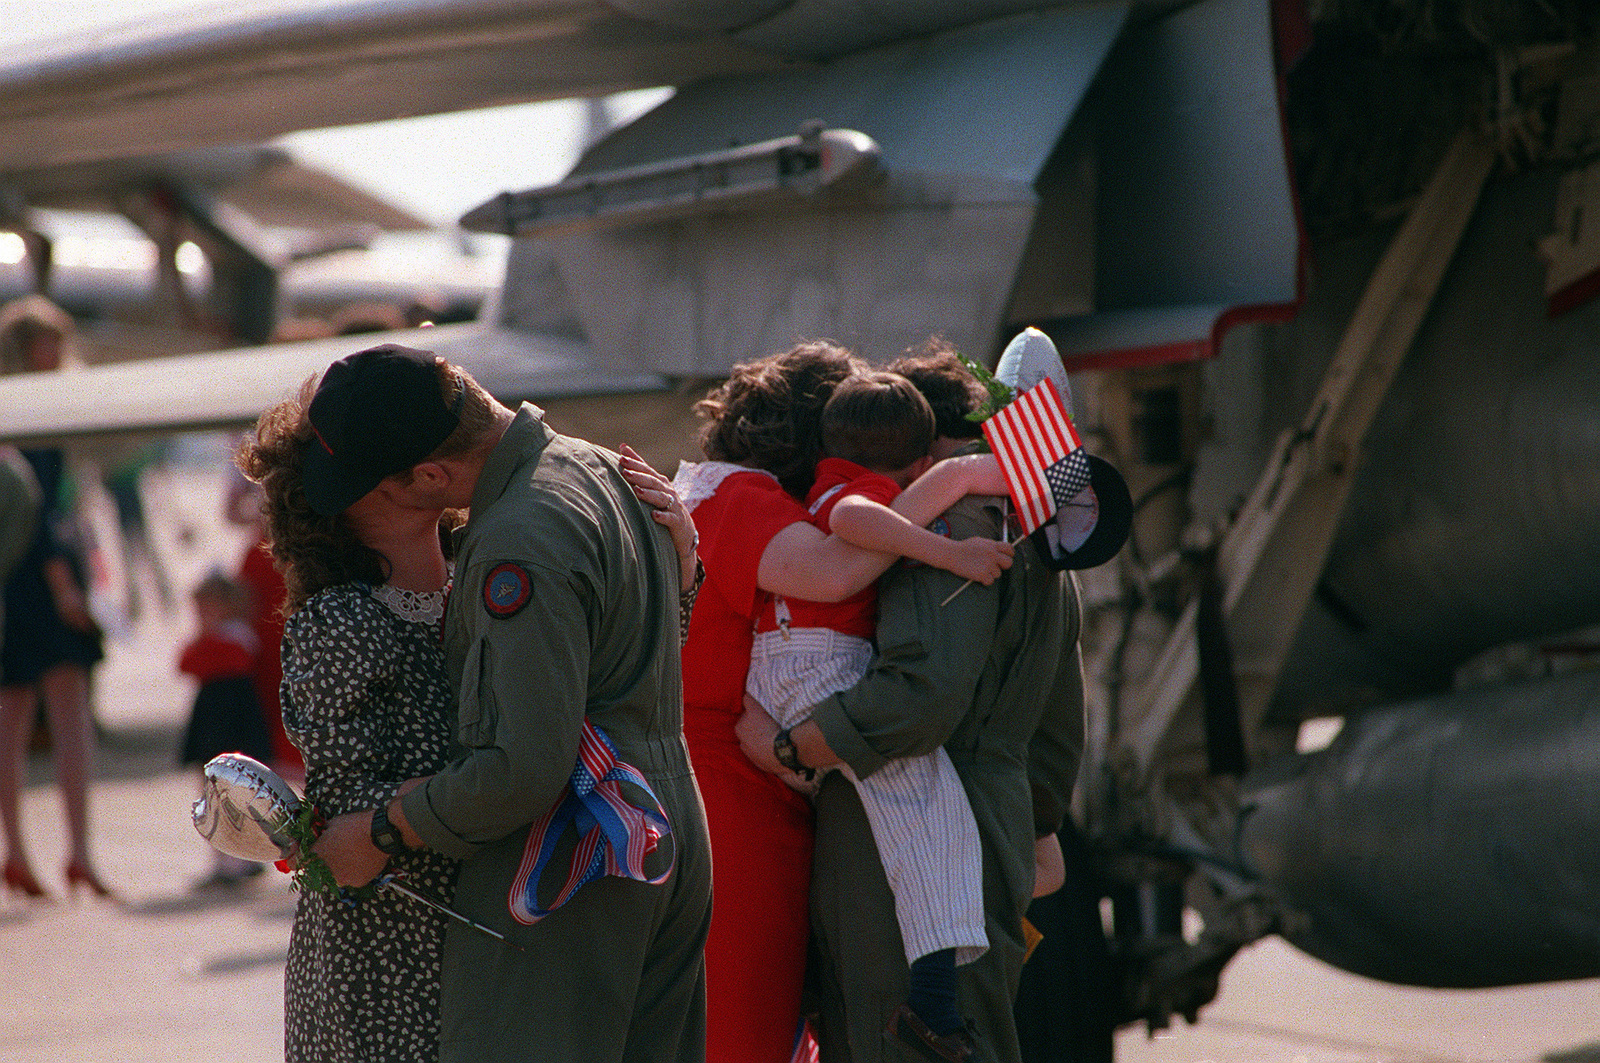 Two naval aviators are reunited with their families. The F-14A Tomcat aircraft and A-6E Intruder aircraft squadrons of Carrier Air Wing 3 (CVW-3) and Carrier Air Wing 17 (CVW-17) are returning to Oceana following their participation in Operation Desert Shield and Operation Desert Storm. CVW-3 and CVW-17 were deployed in the Red Sea aboard the aircraft carriers USS JOHN F. KENNEDY (CV-67) and USS SARATOGA (CV-60), respectively